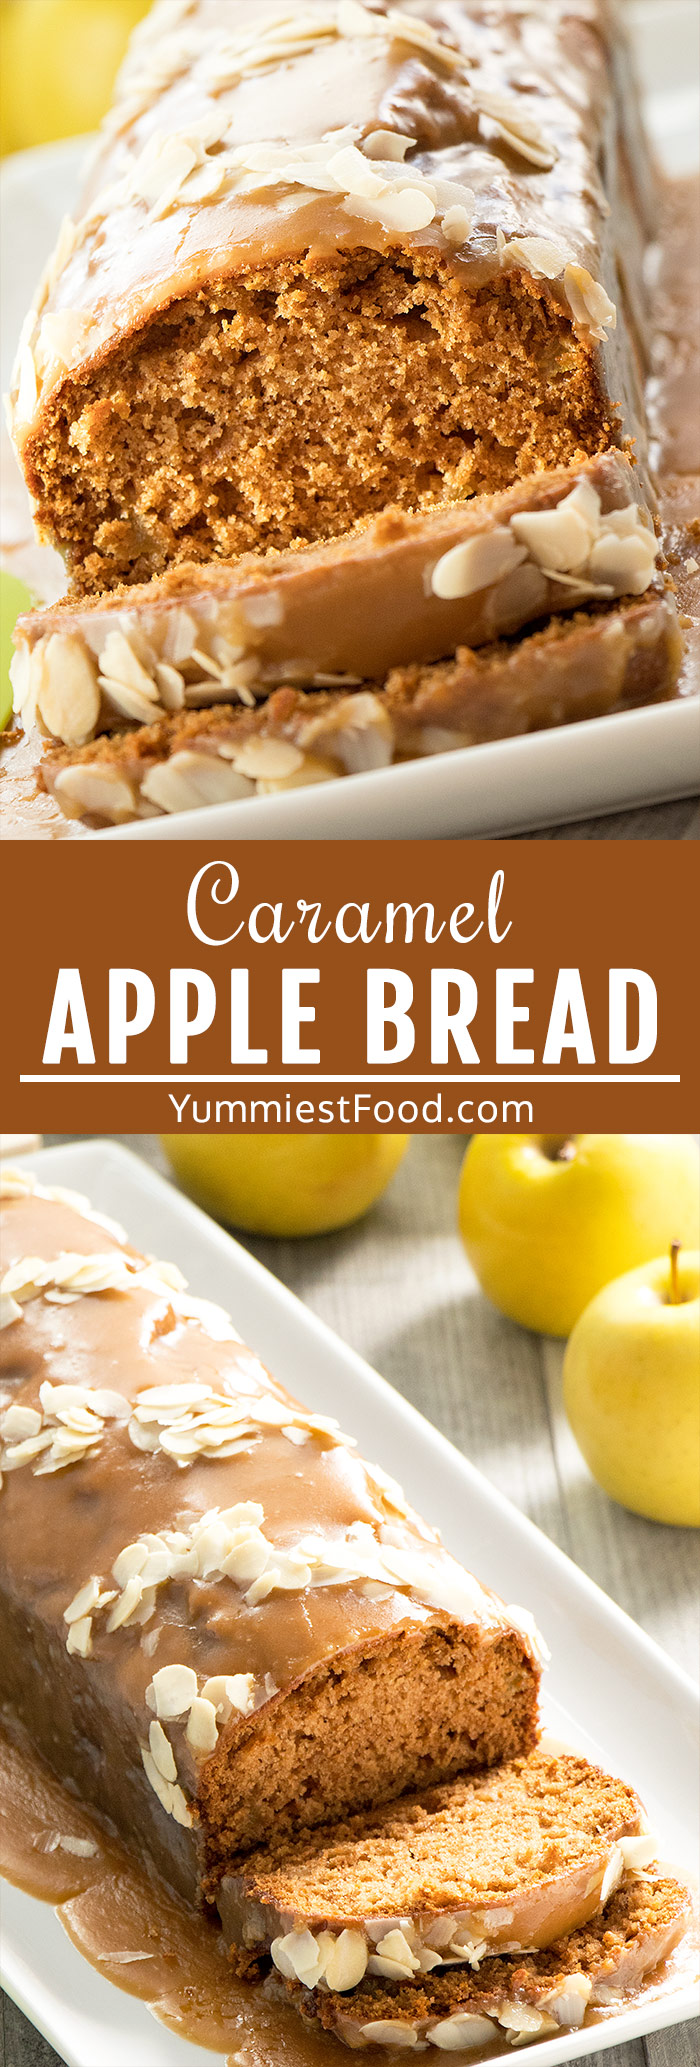 Caramel Apple Bread with Cinnamon and Nutmeg - dense and flavorful quick and easy Caramel Apple Bread topped with 3 ingredients and only 5 minutes to make caramel glaze